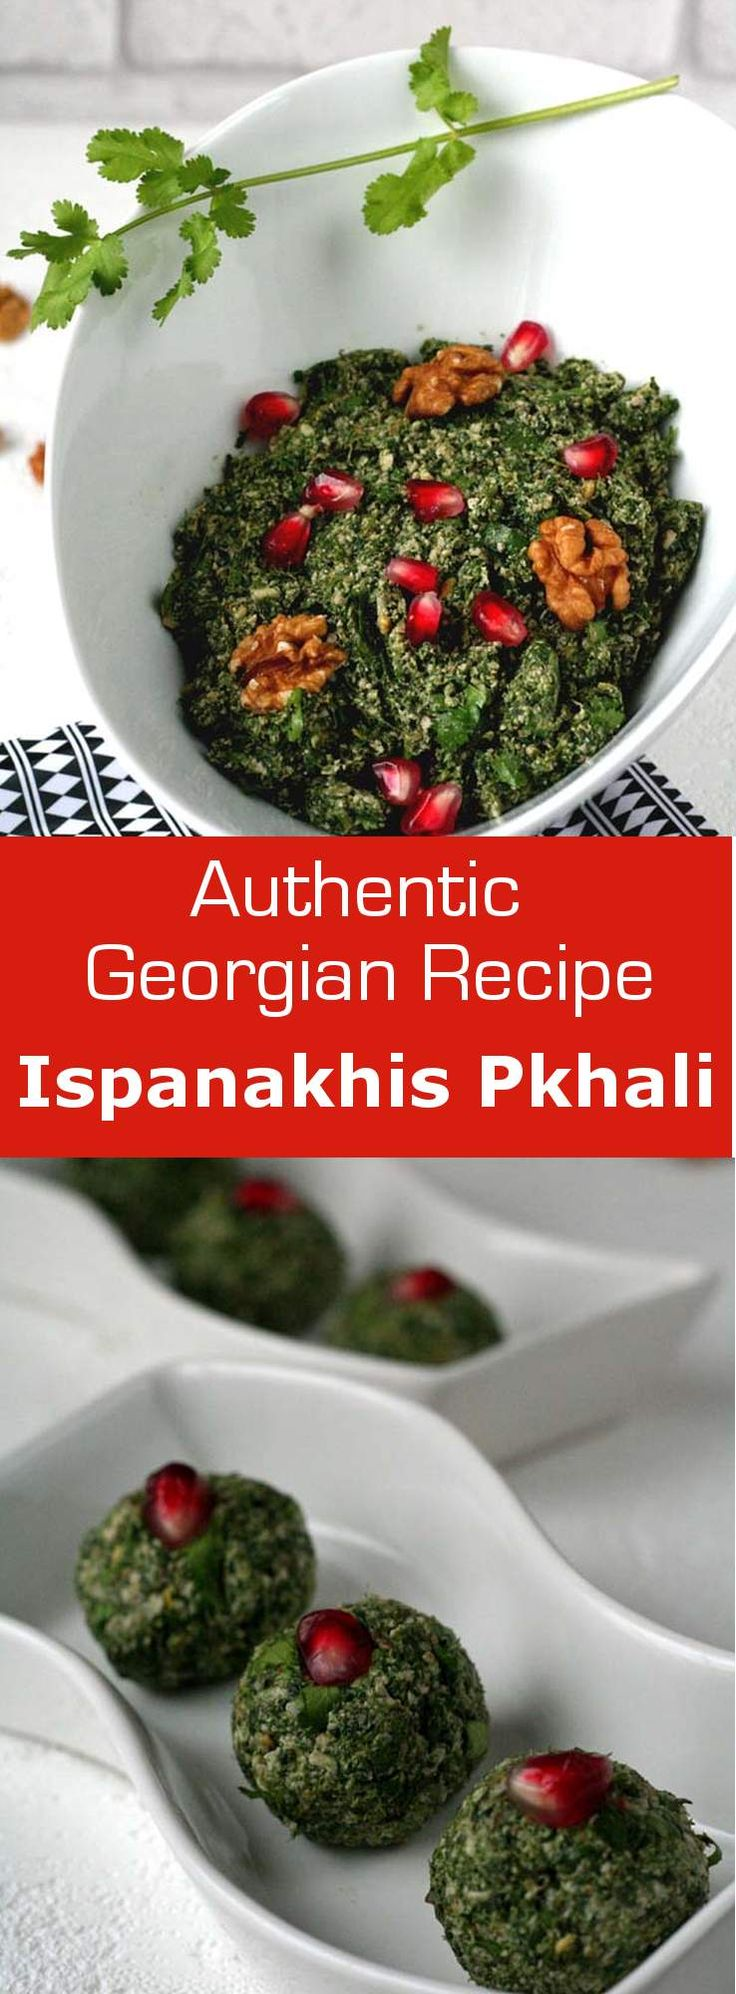 Ispanakhis Pkhali is a traditional Georgian vegetarian specialty with spinach…